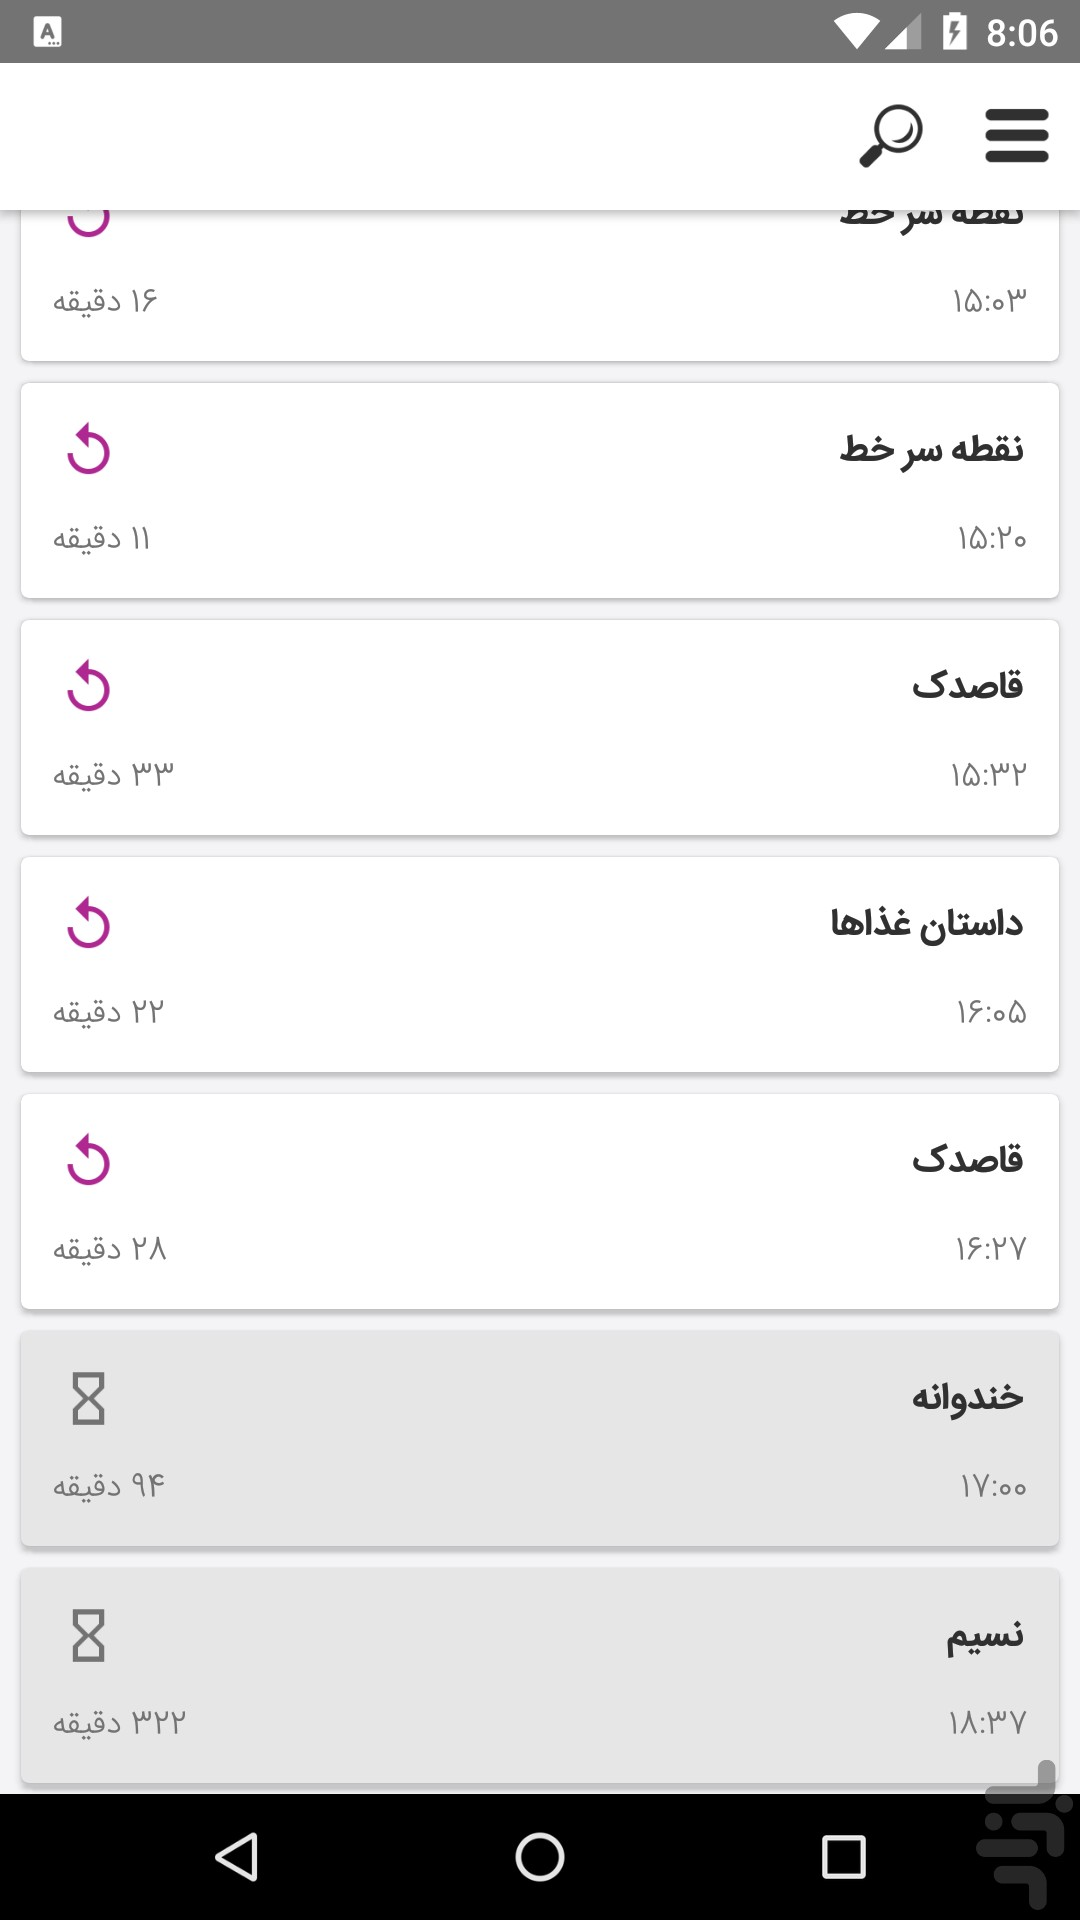 تی وی نت screenshot